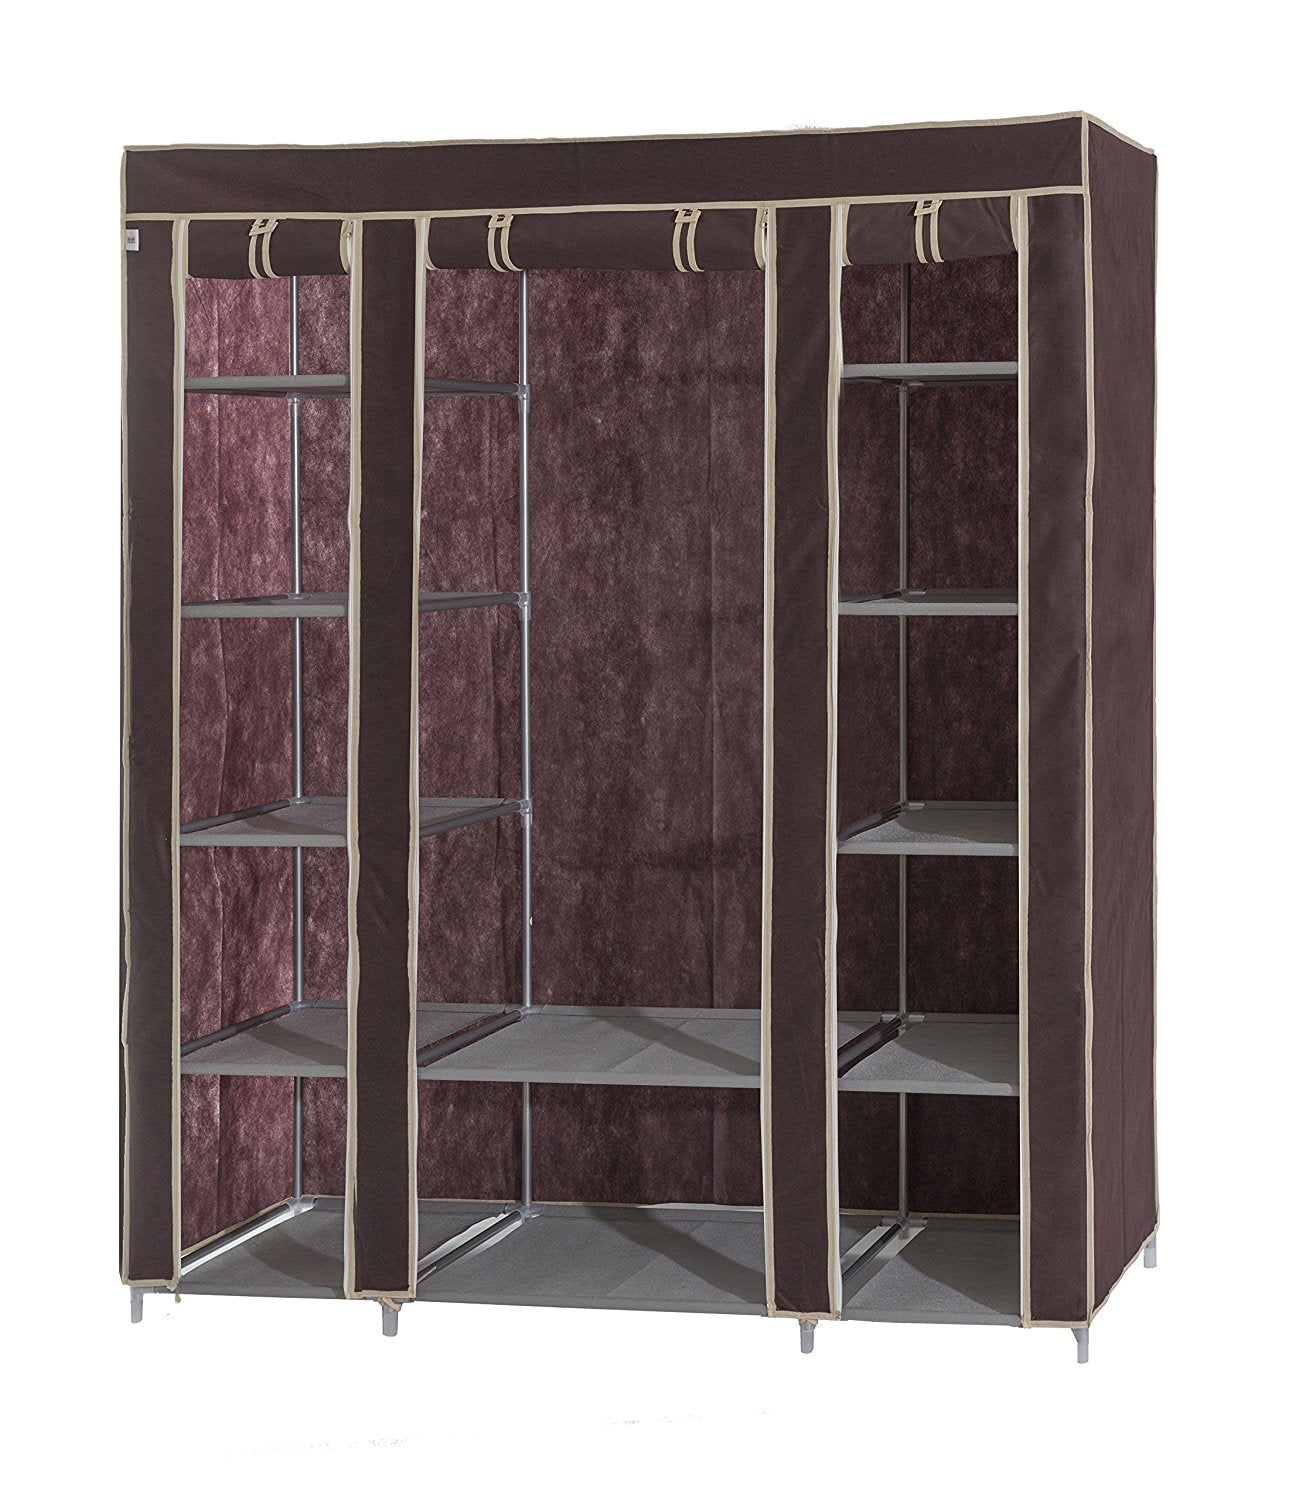 Portable Fabric Wardrobe With Shelves Covered Closet Rack Get It